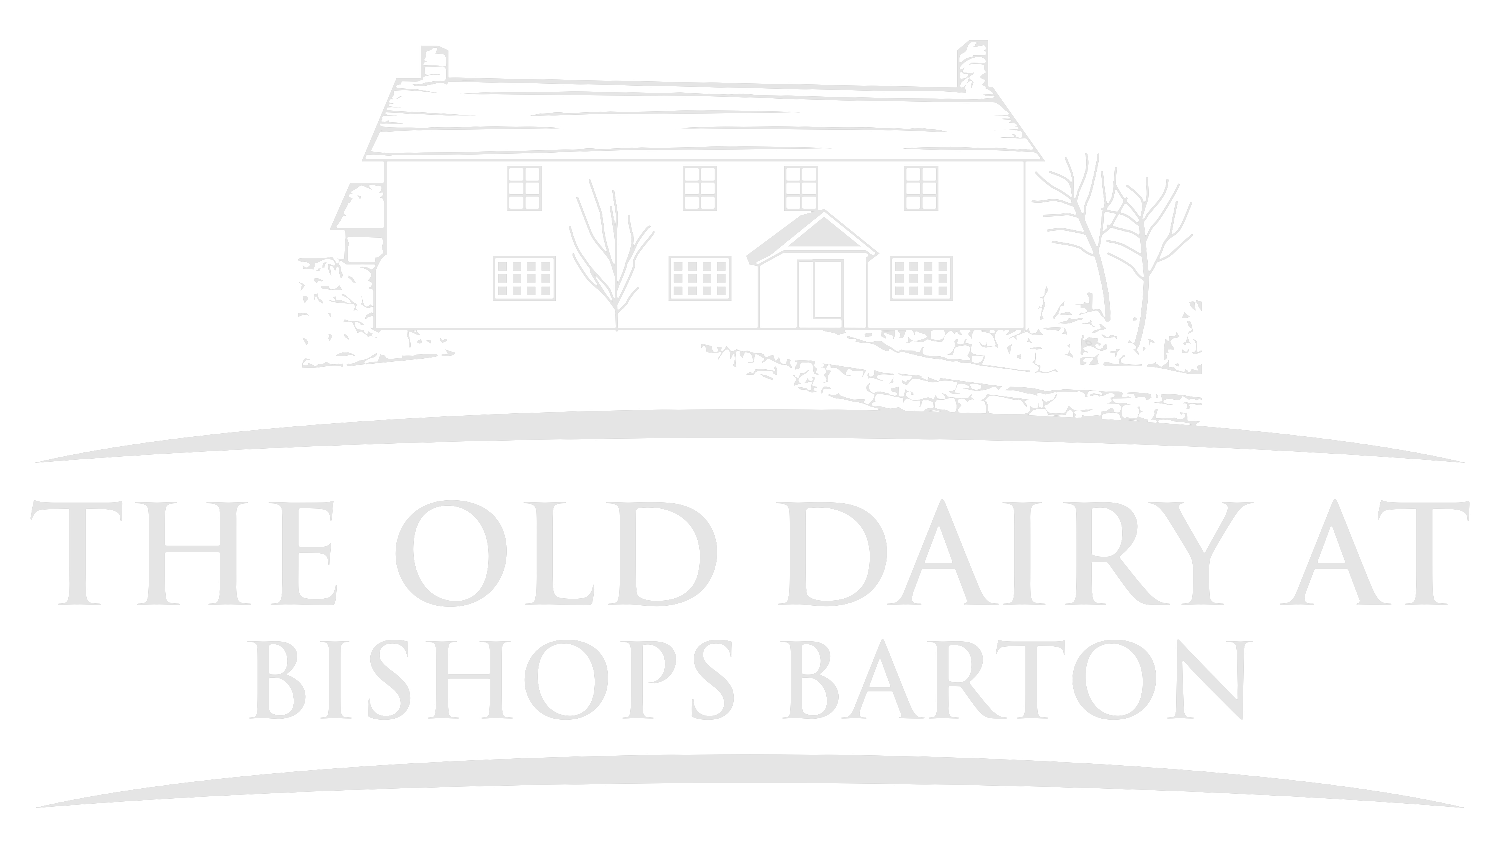 The Old Dairy at Bishops Barton